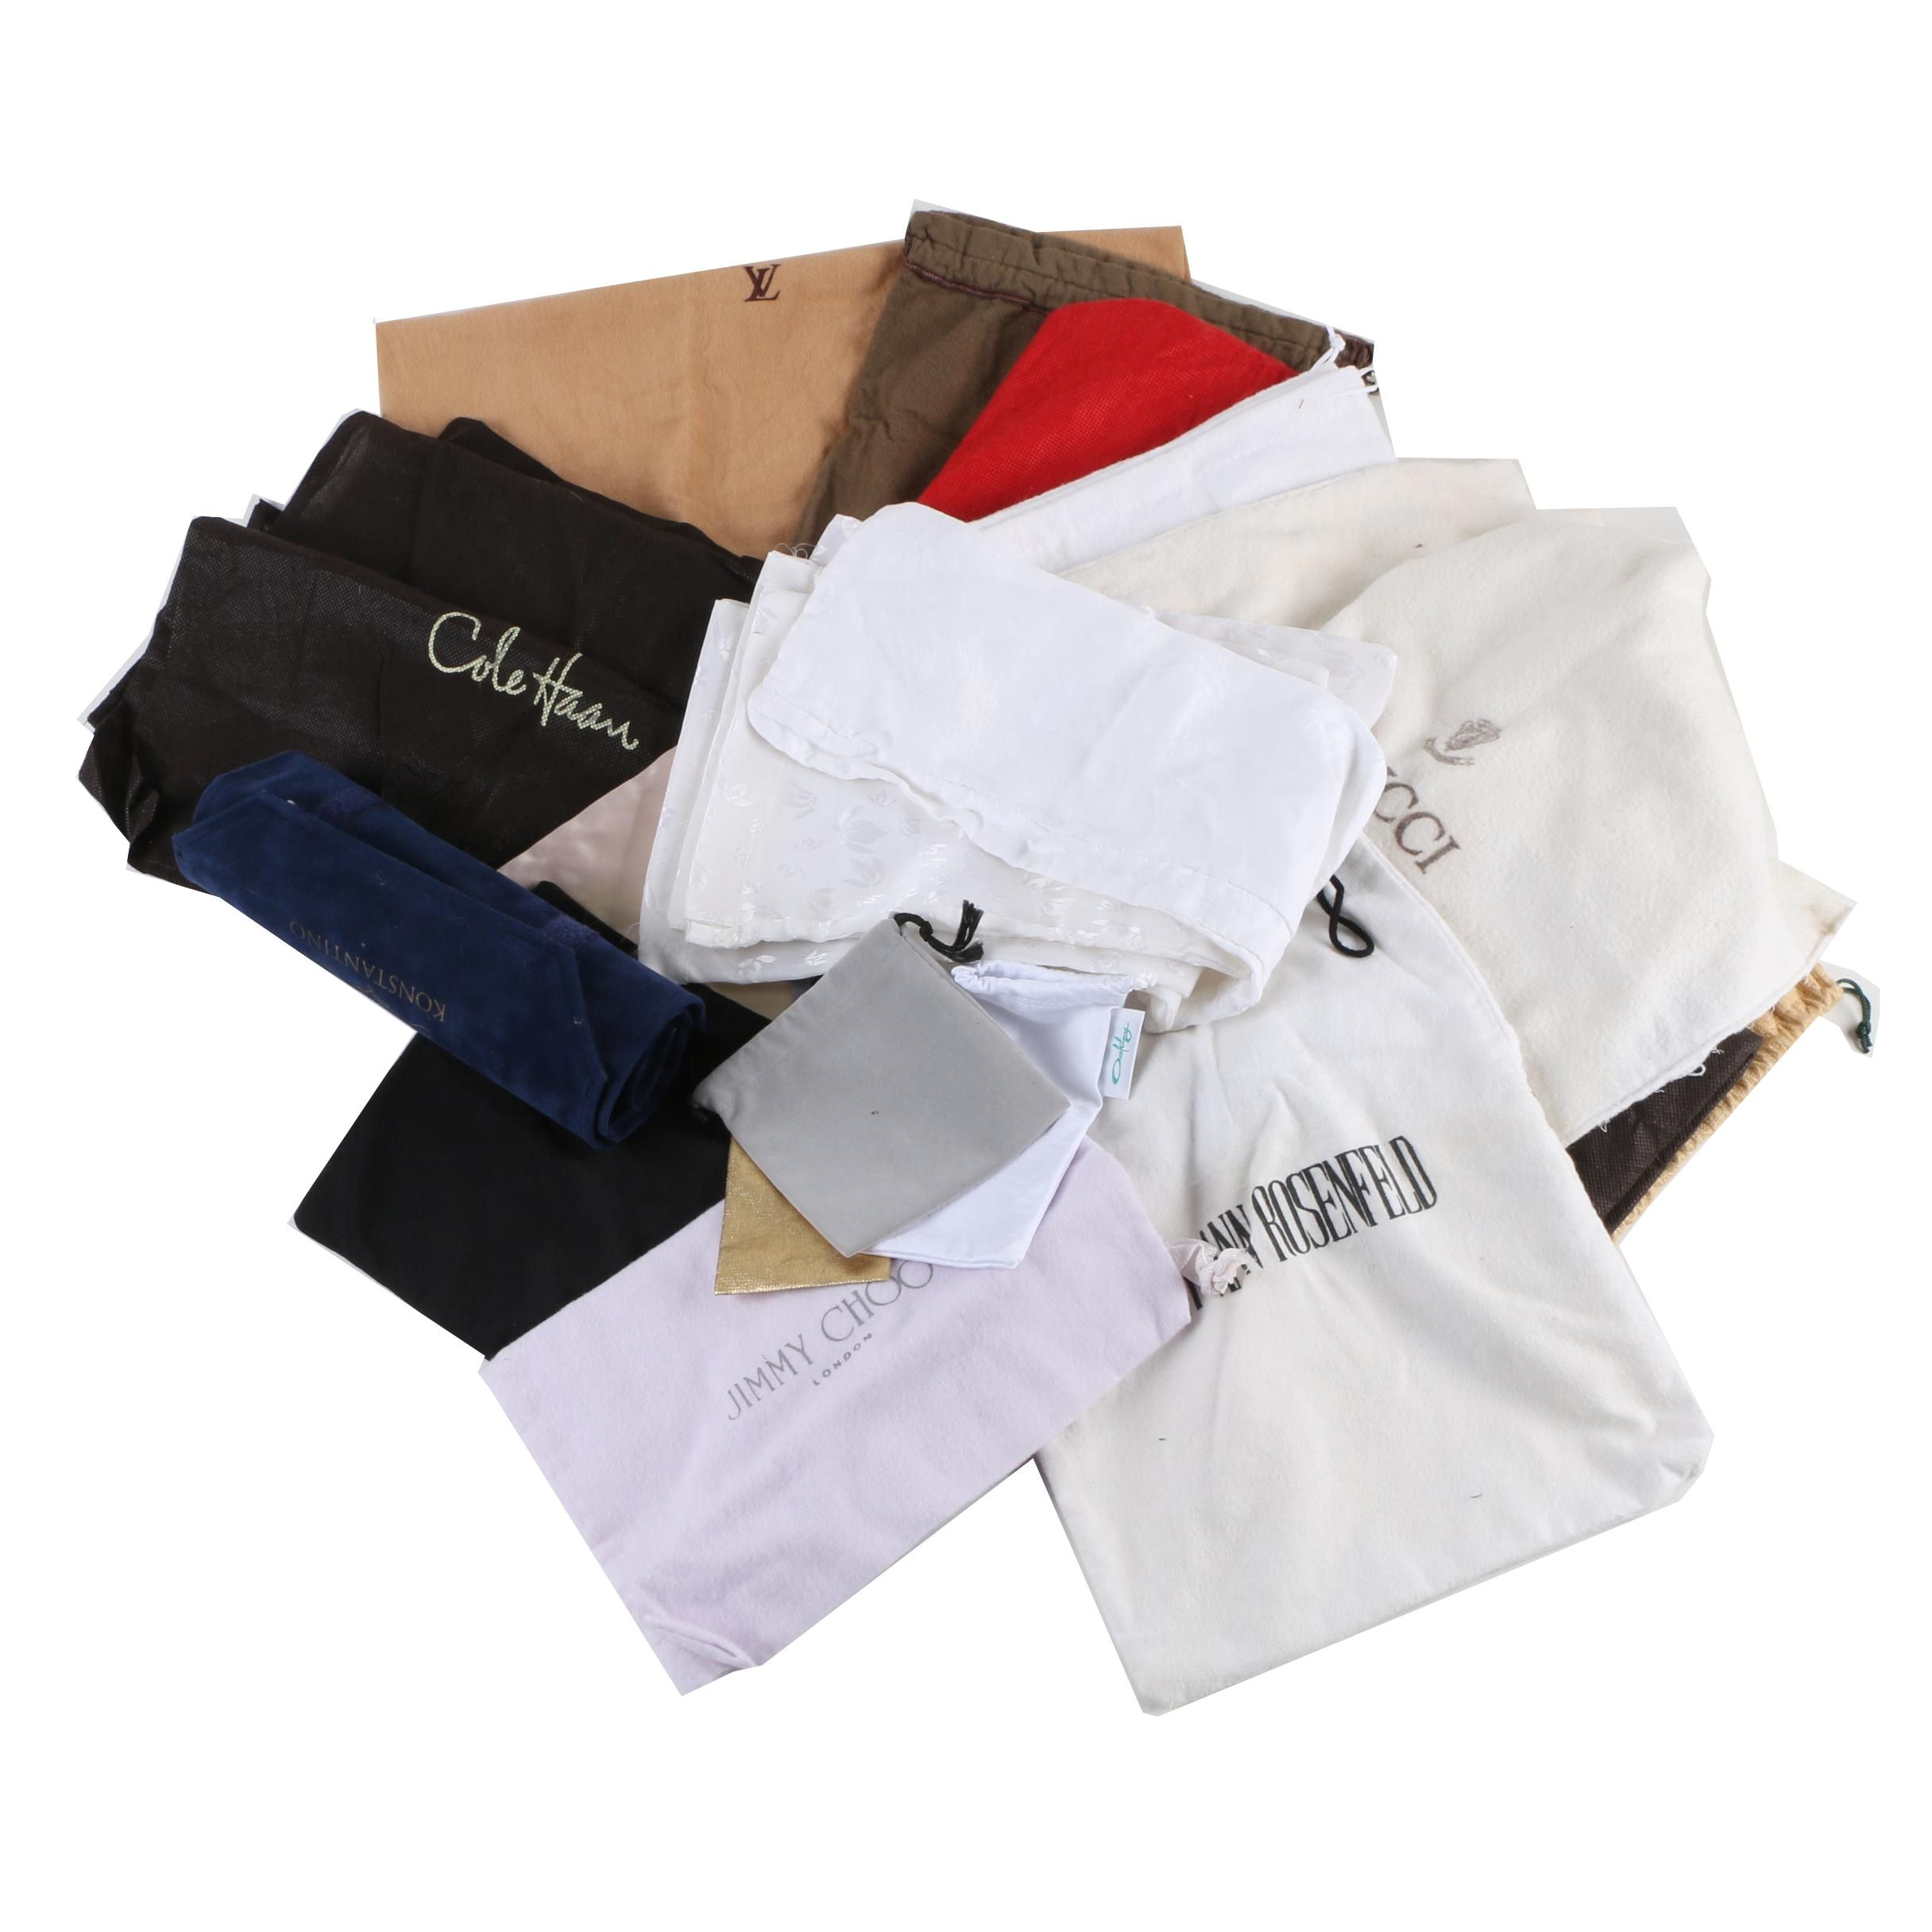 Designer Dust Covers and Pouches Including Vintage Christian Dior and Gucci